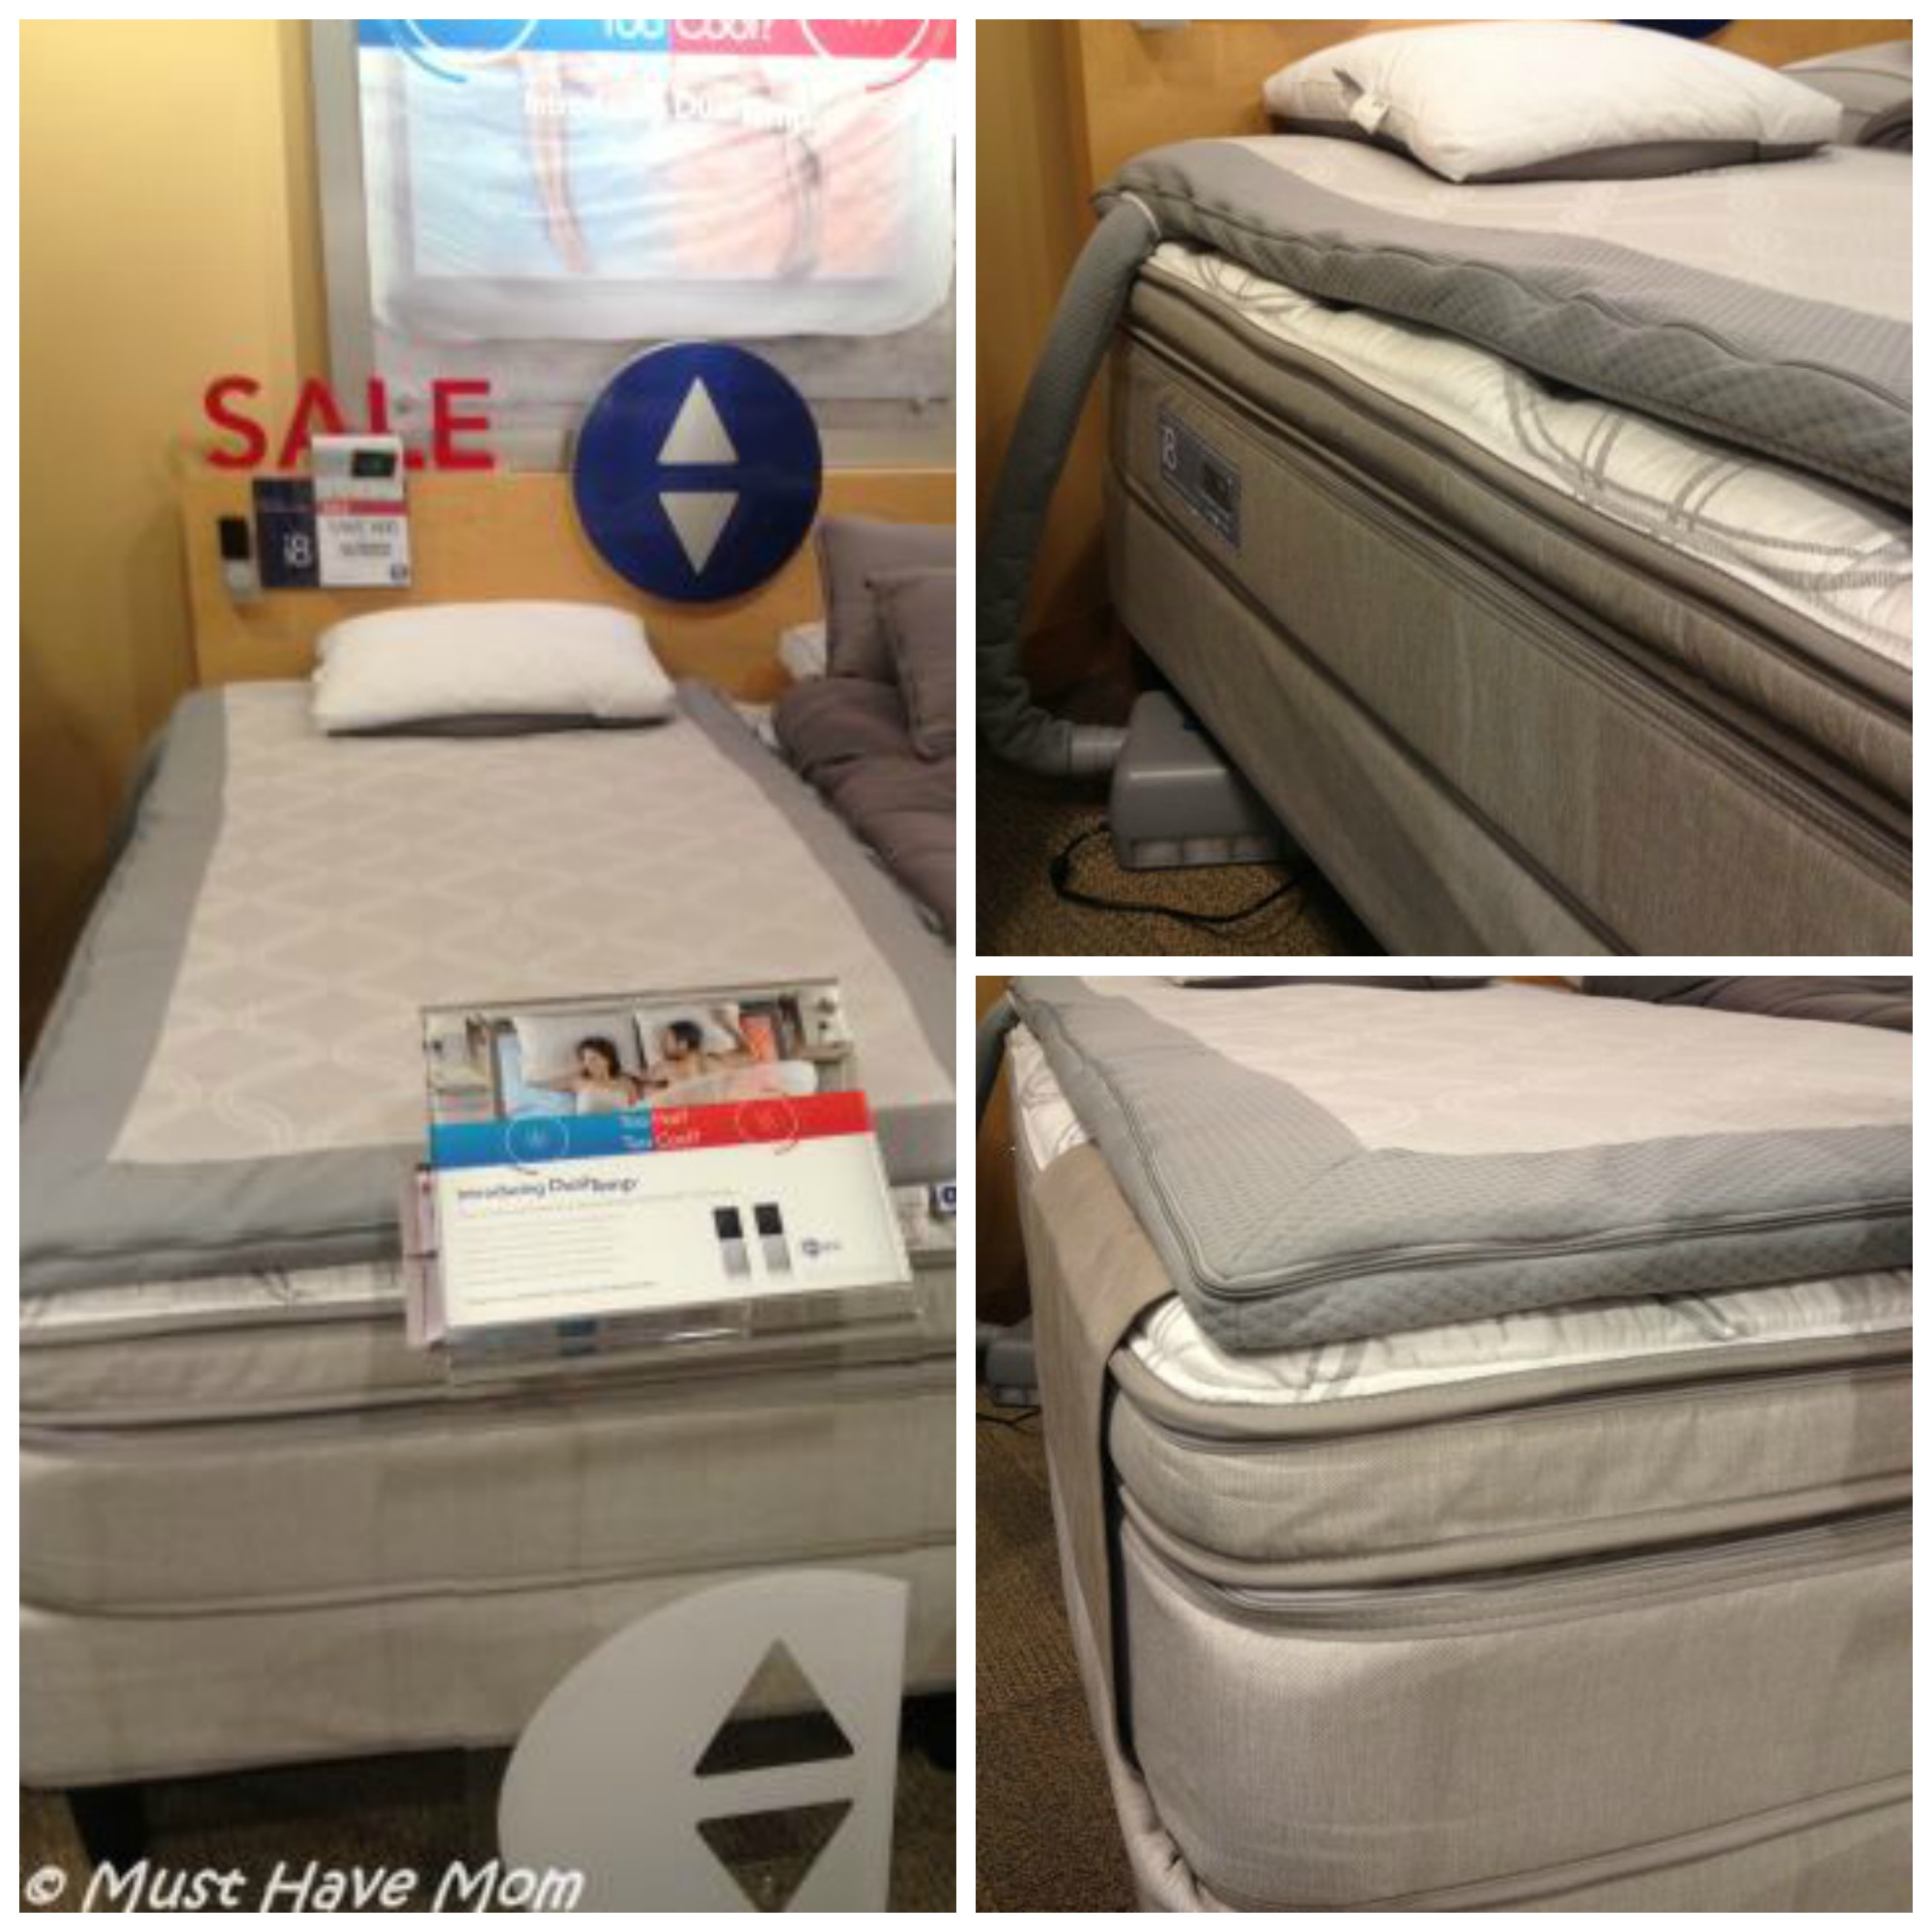 sleep at stores pregnant while even number a dualtemp bed different store temperature comfortably review layer in